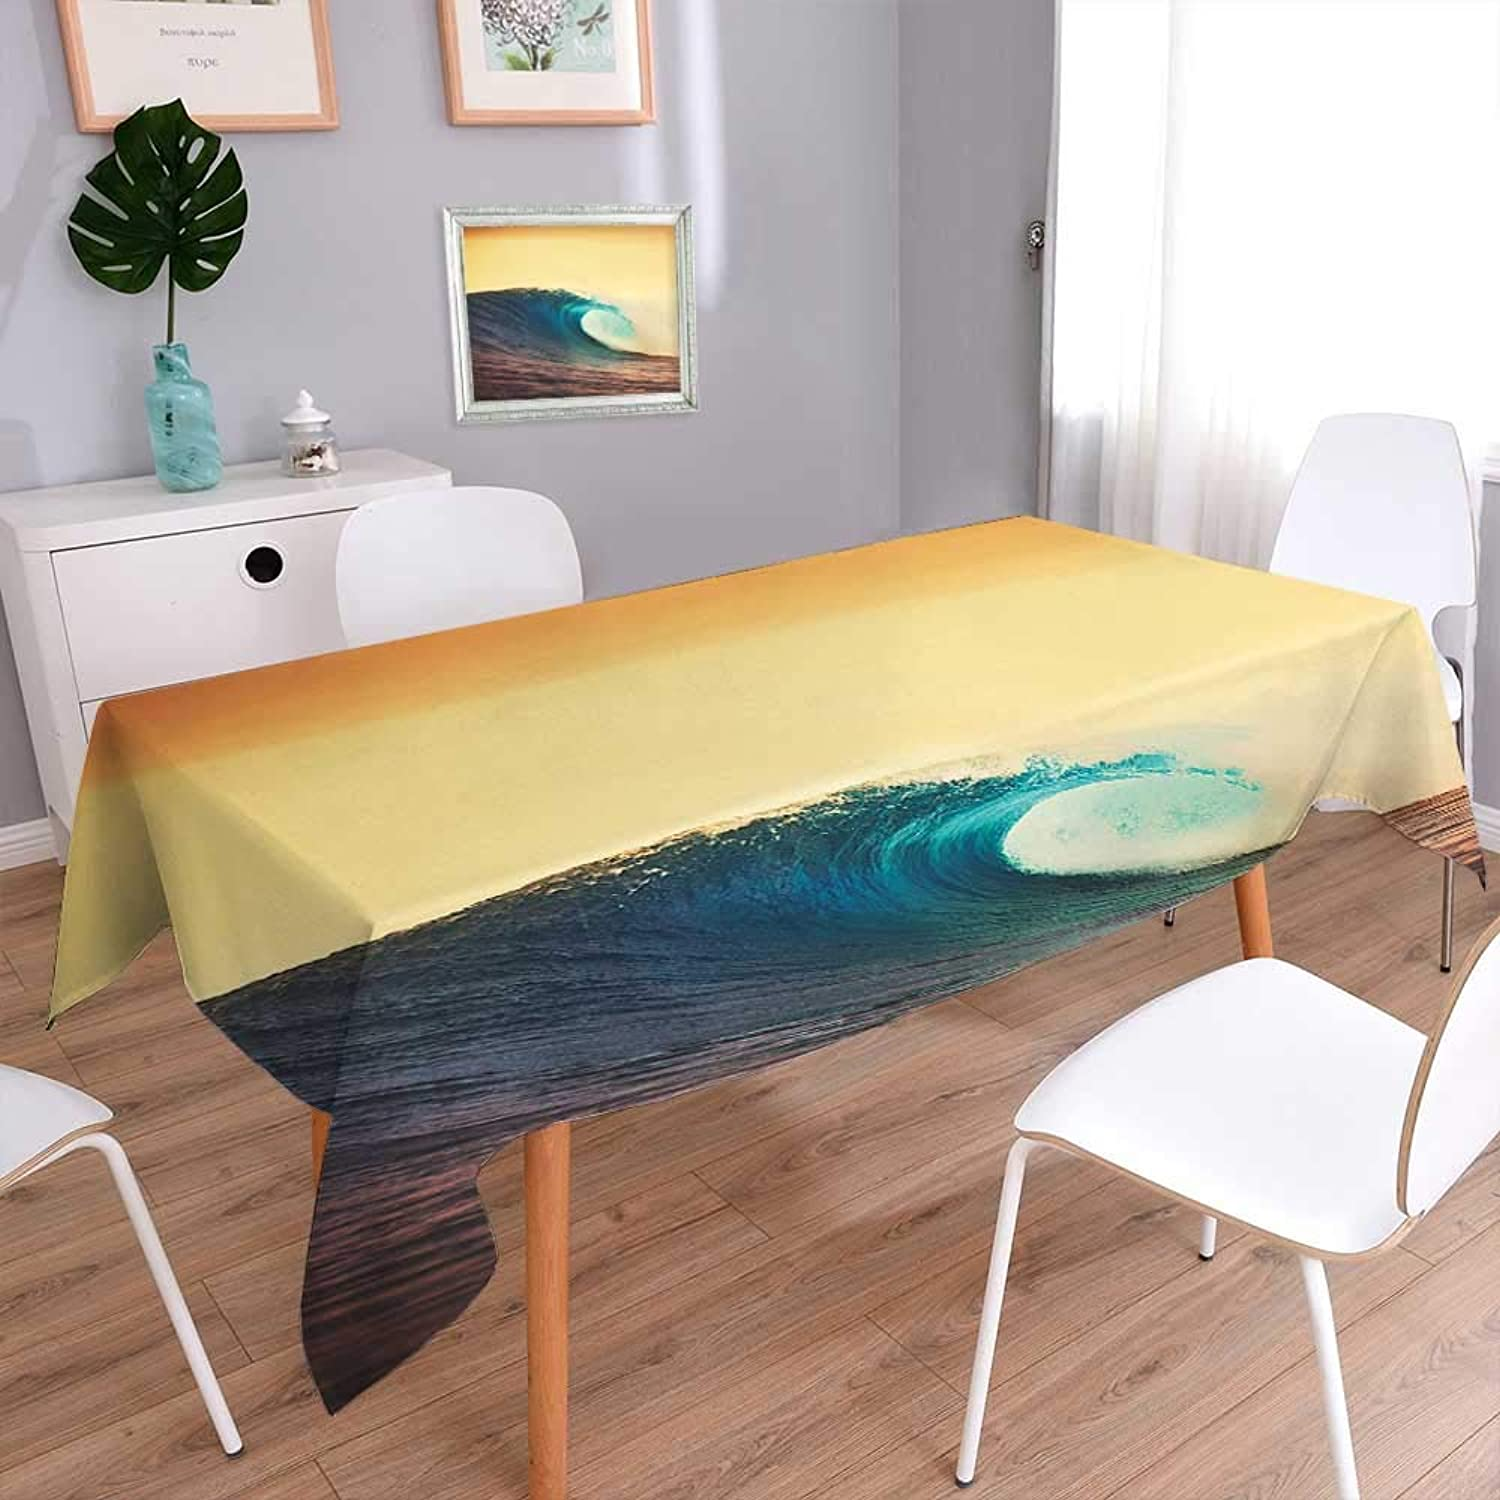 L-QN 100% Polyester, Eco-Friendly and Safe Paintworks Ocean Breaking Wave at Sunset in Warm colors Seacoast Seasonal Picture Art Multi colors & Sizes 70 x120